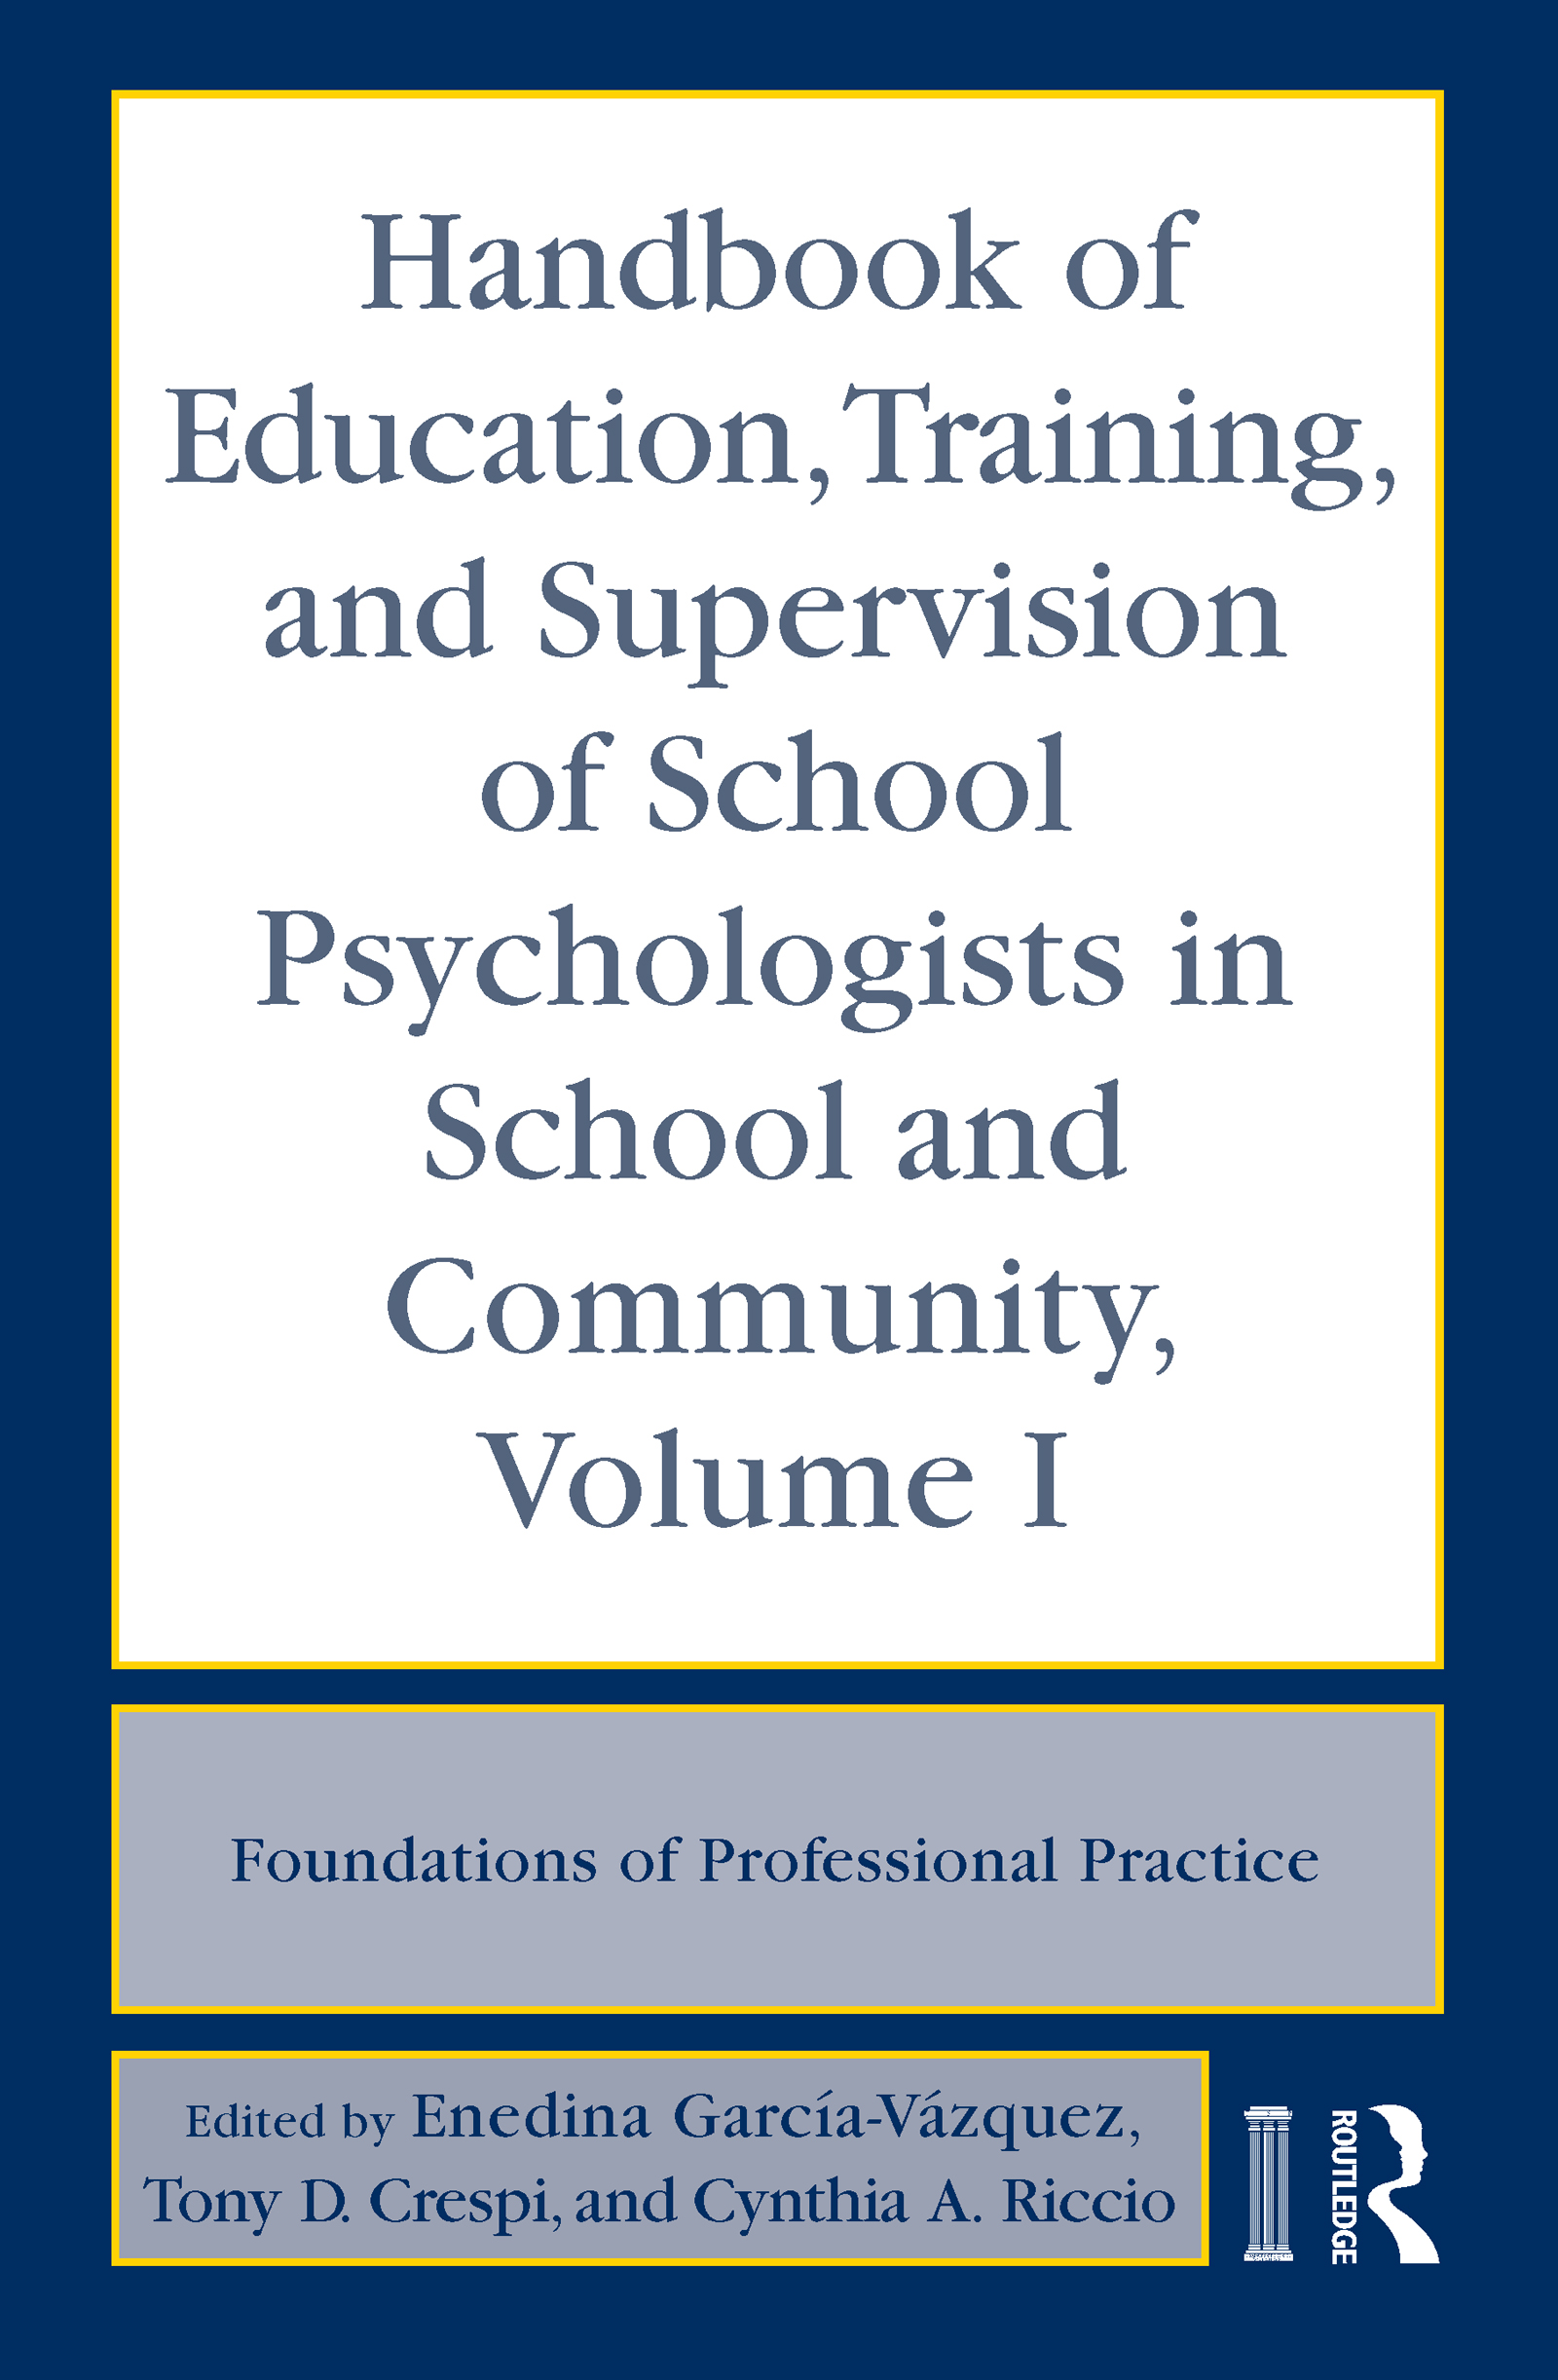 Handbook of Education, Training, and Supervision of School Psychologists in School and Community, Volume I: Foundations of Professional Practice book cover